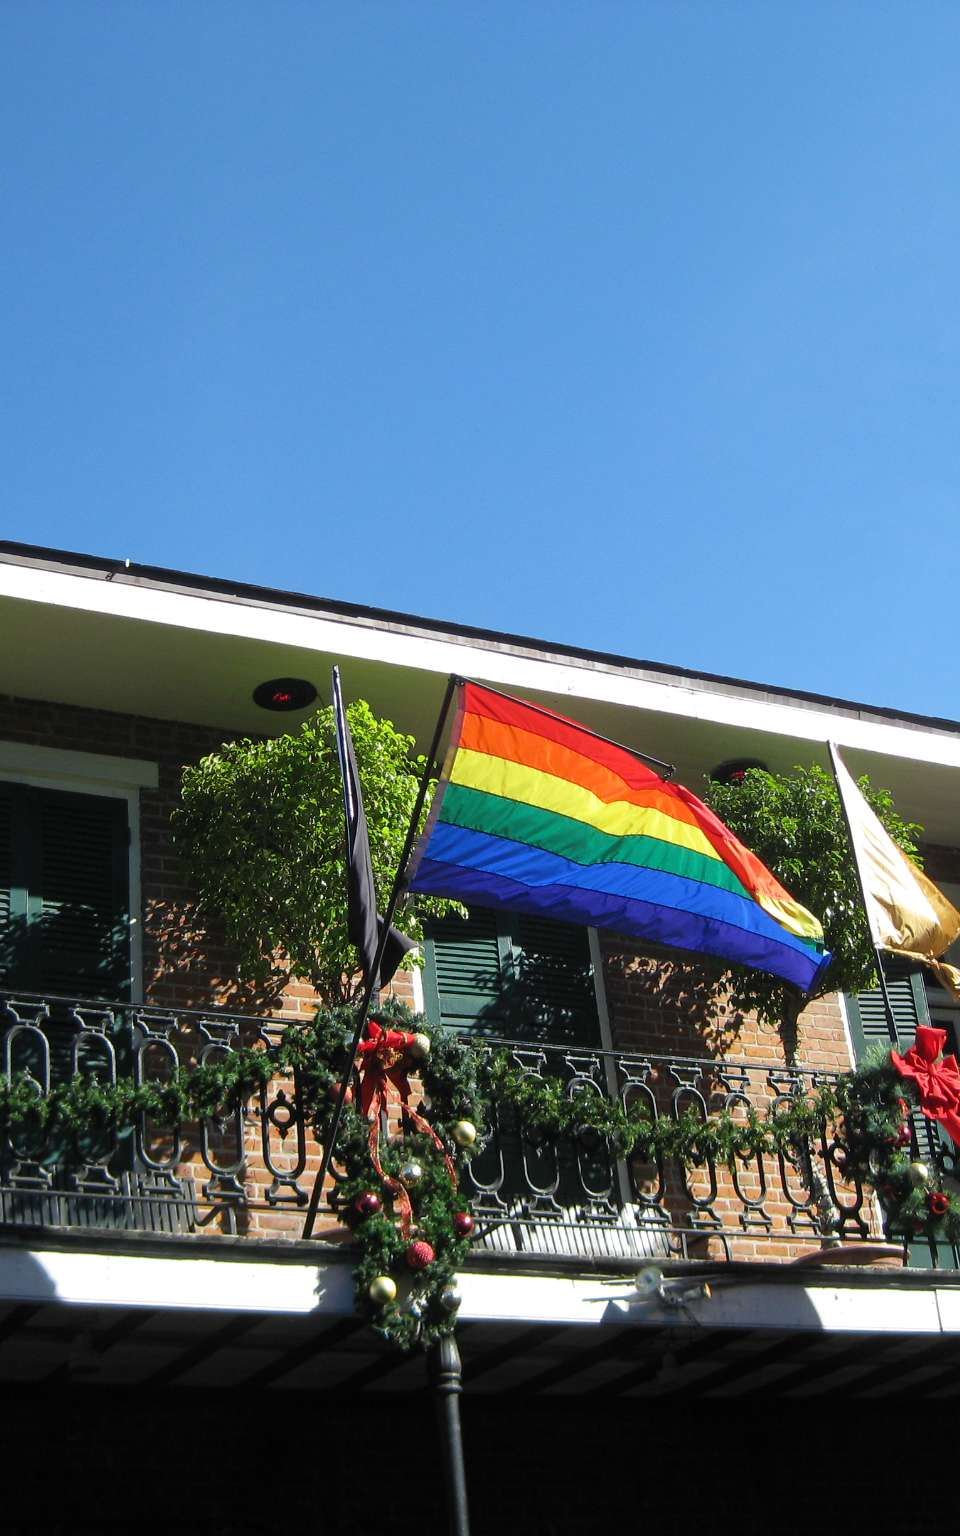 Rainbow flags in the French Quarter